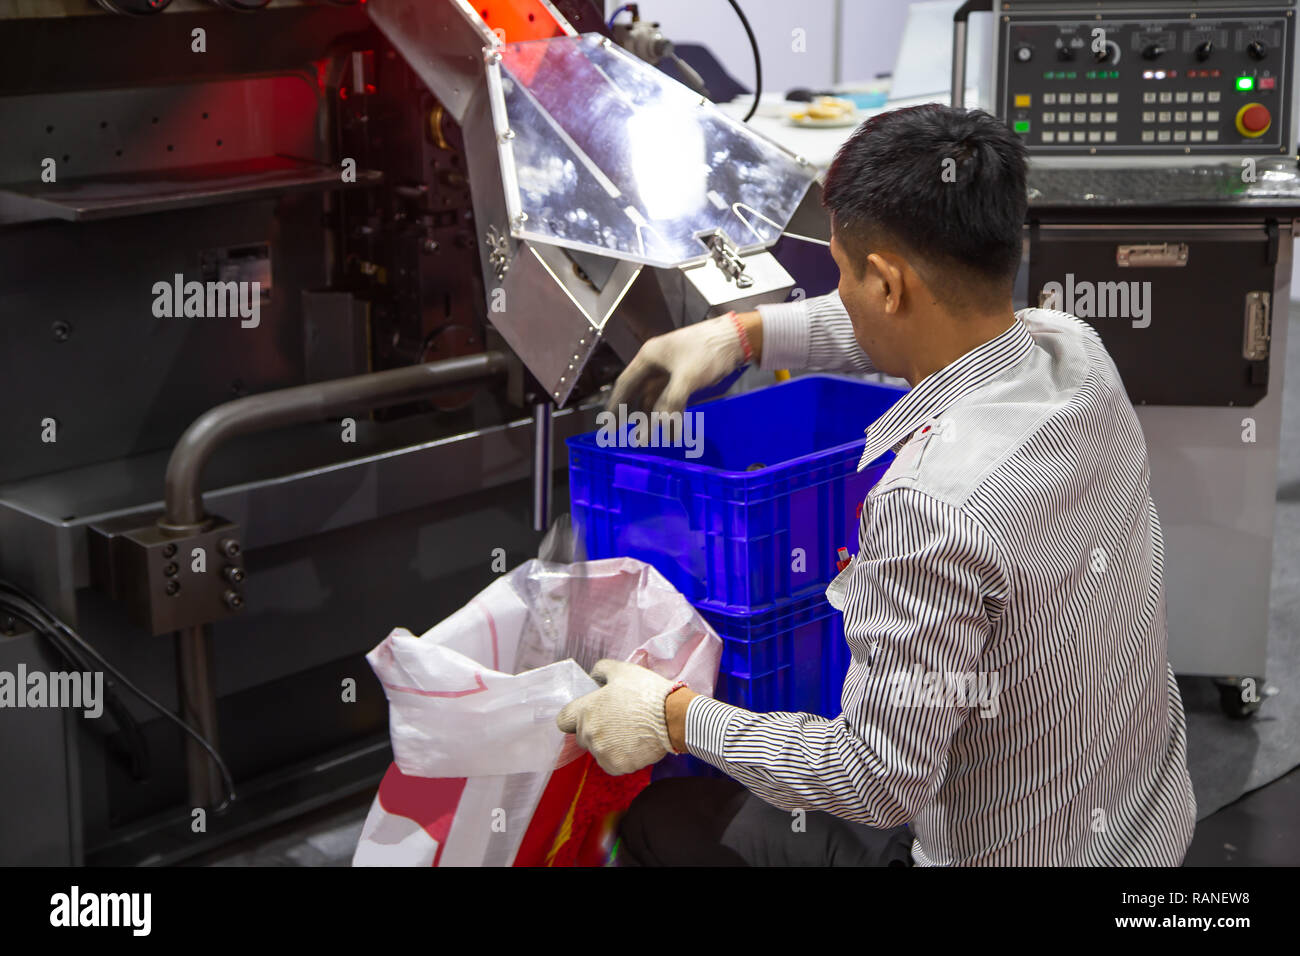 Worker collect spring products in busket from spring coiling machine - Stock Image